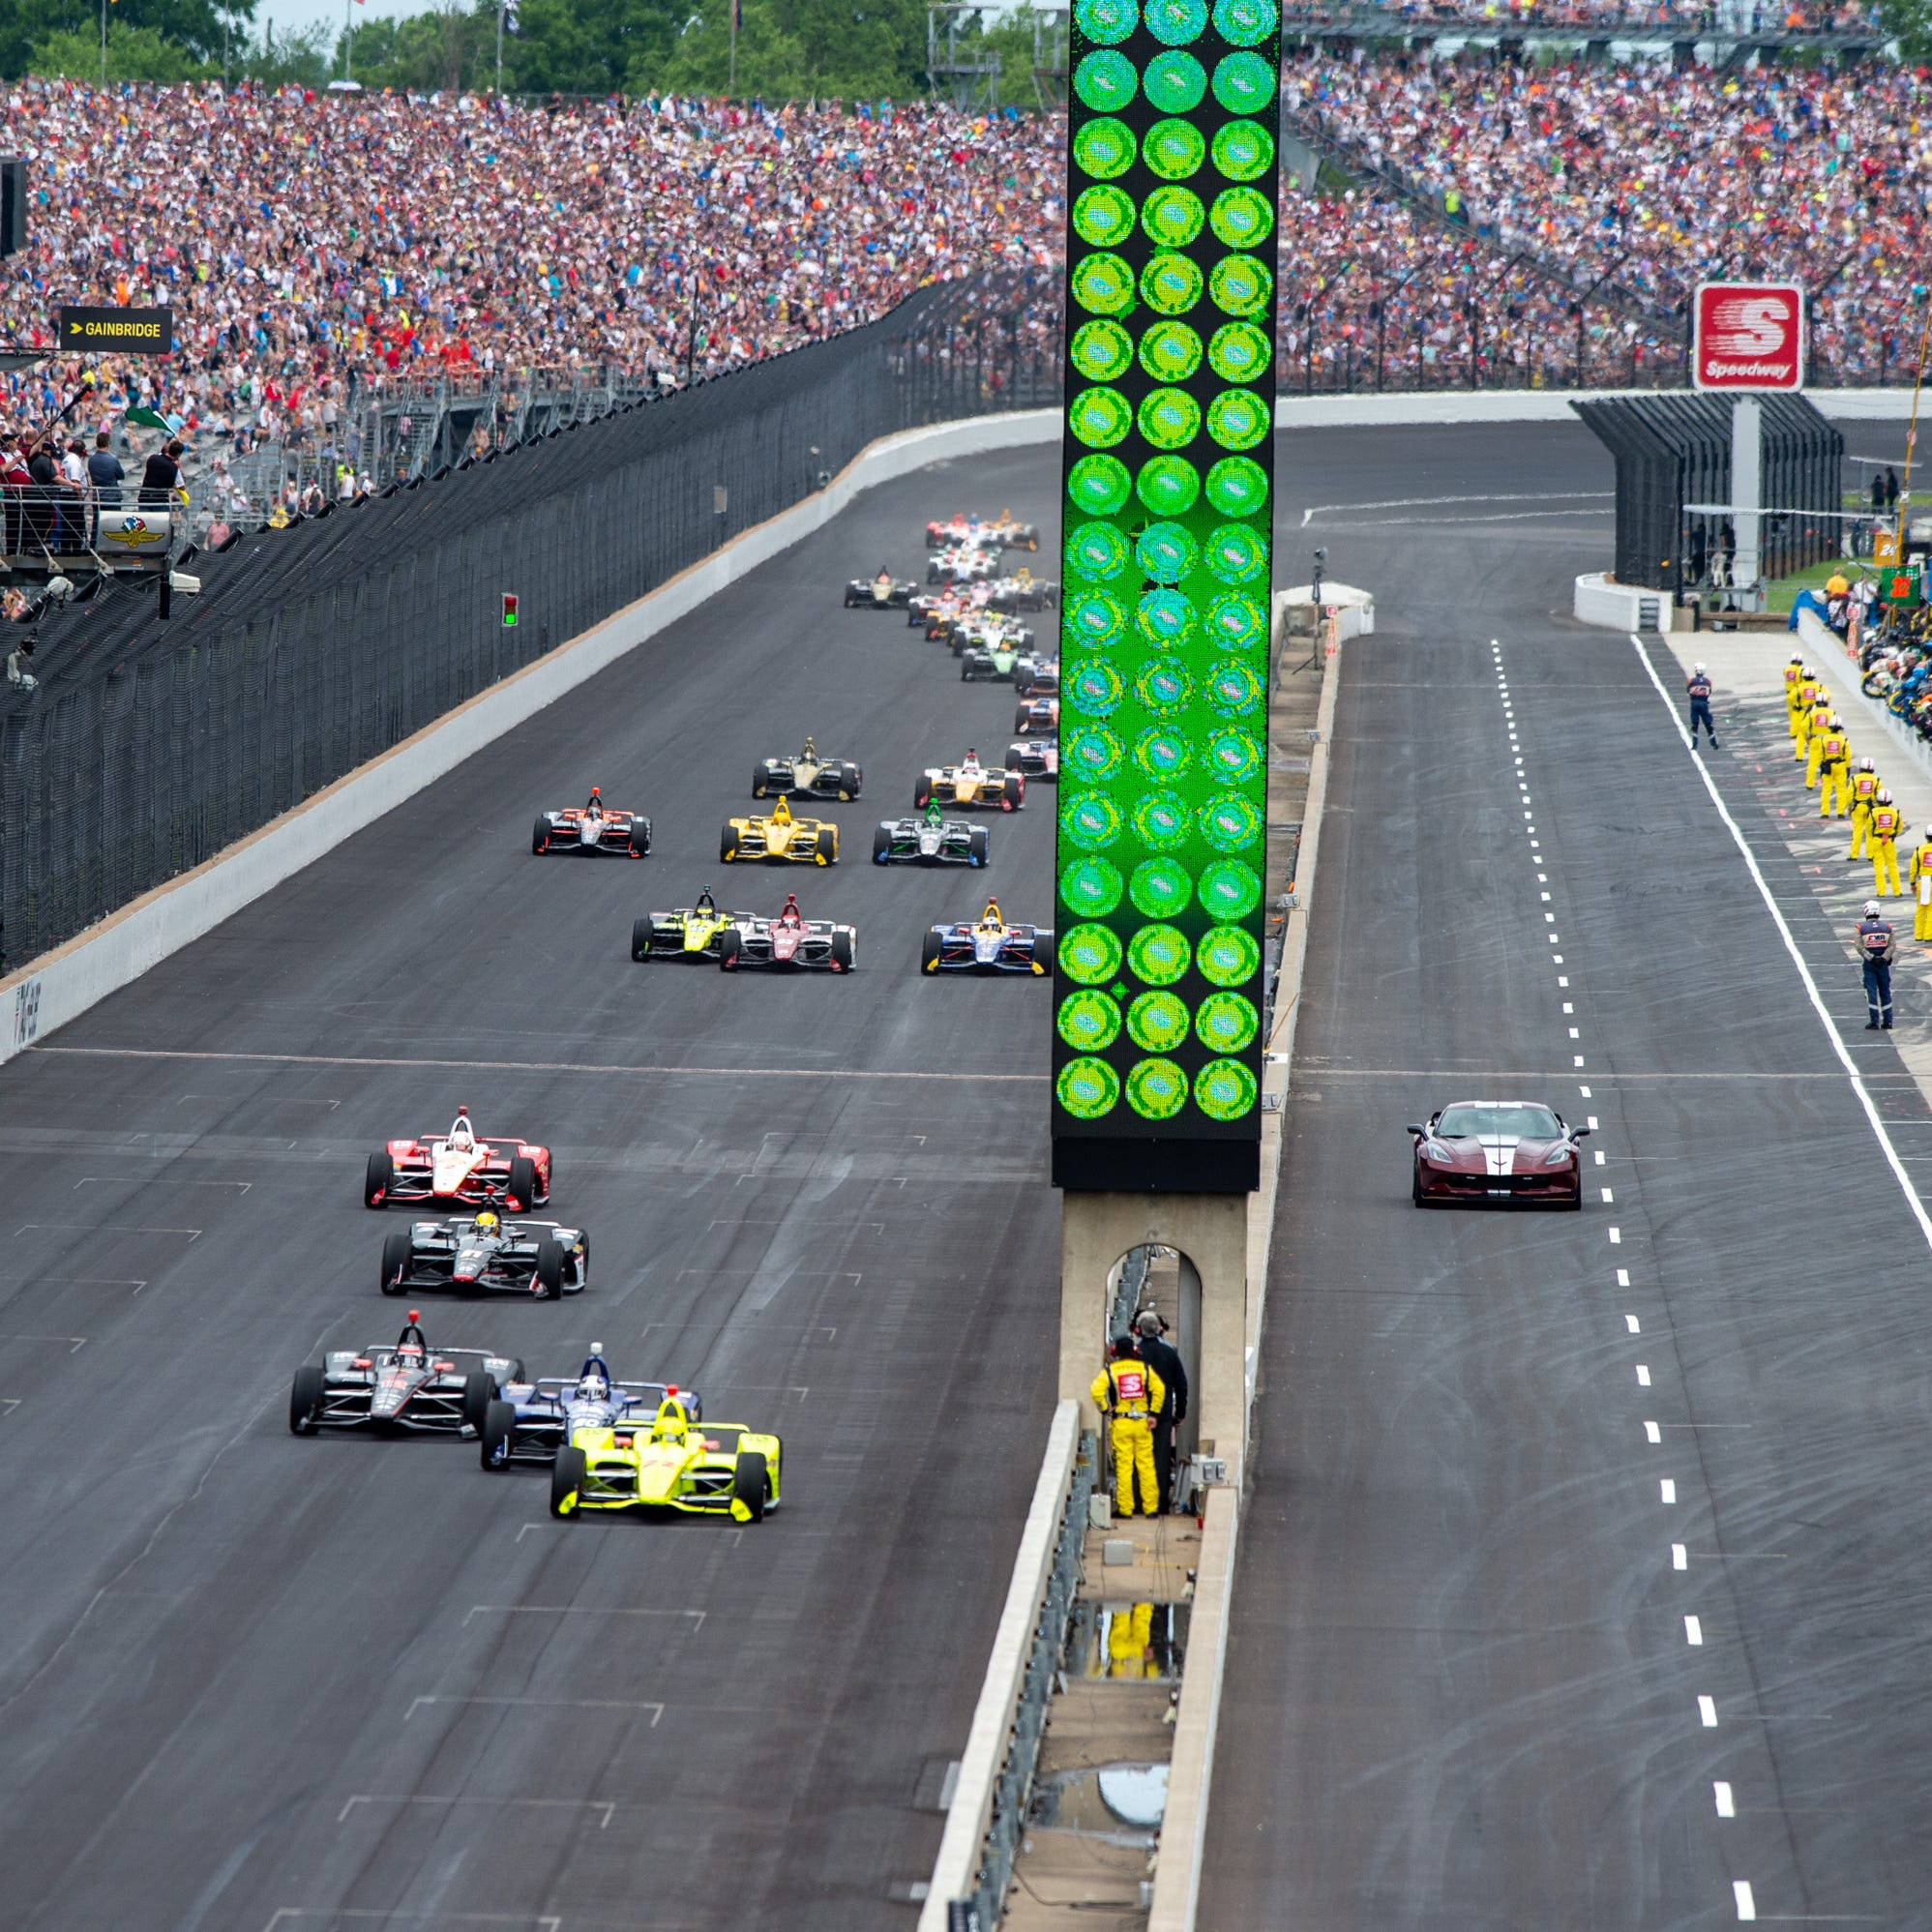 Here's what happened to the crew member who was injured during the Indy 500